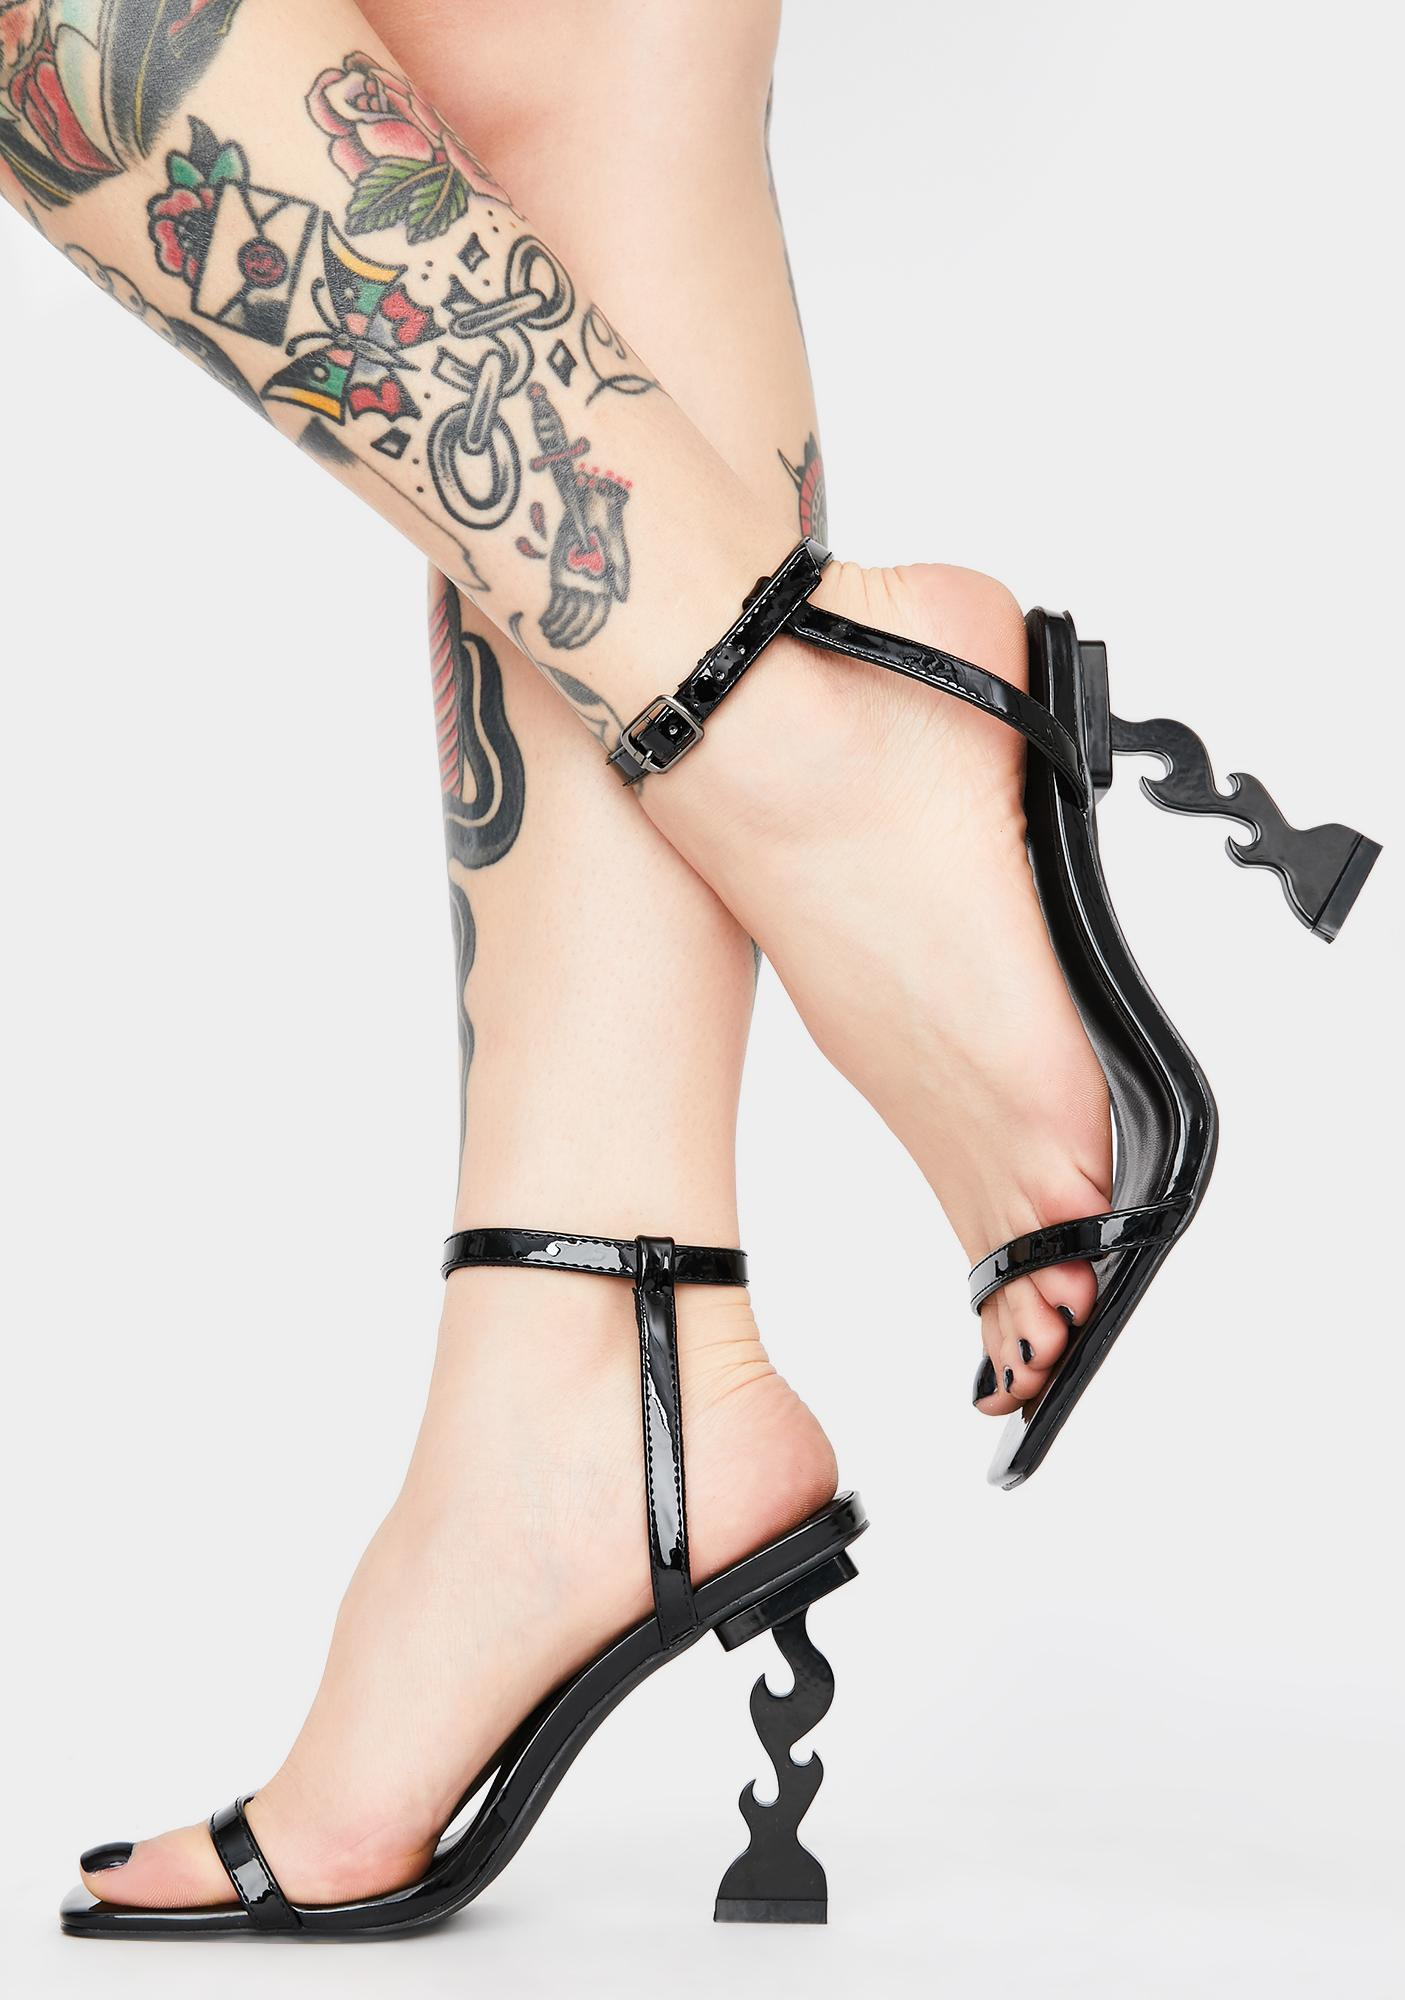 HOROSCOPEZ Sultry Mistress Flame Heels